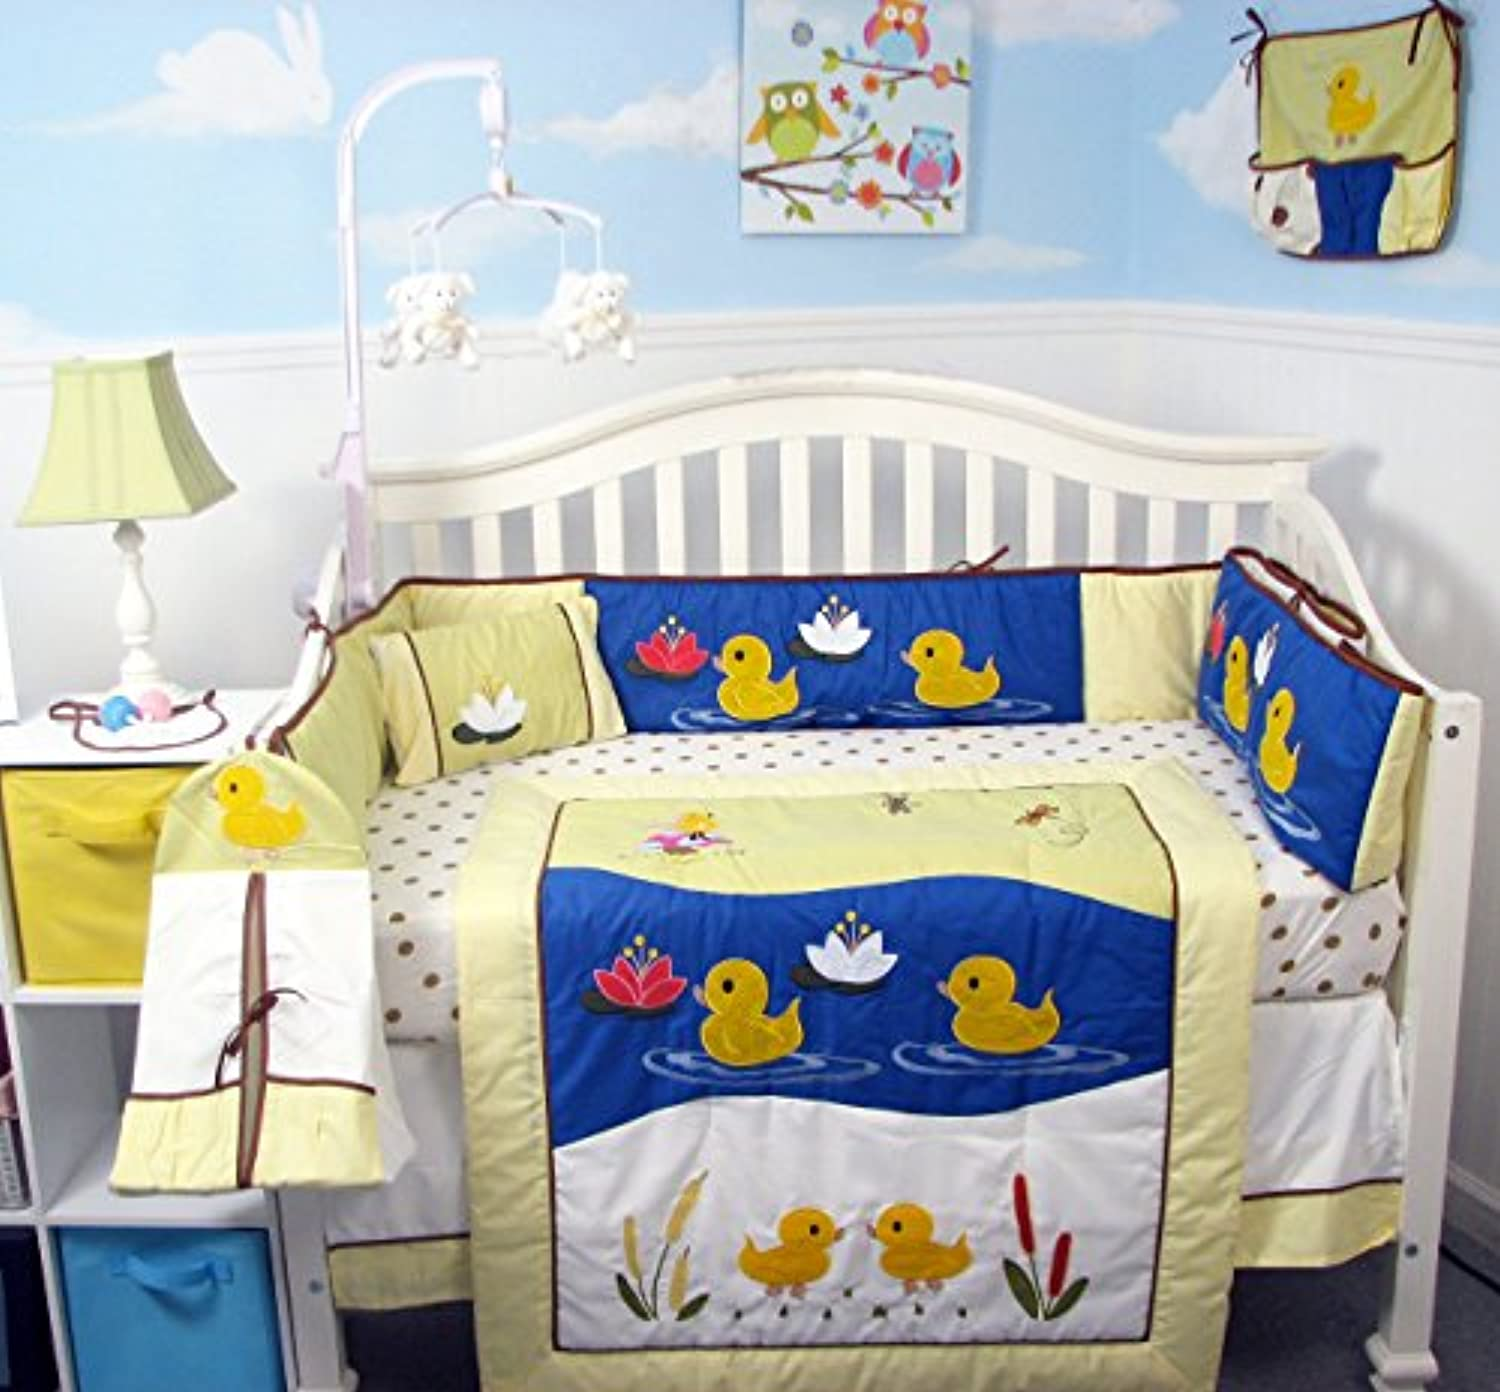 SoHo Quack Quack Ducks Baby Crib Nursery Bedding Set 13 pcs included Diaper Bag with Changing Pad & Bottle Case by SoHo Designs